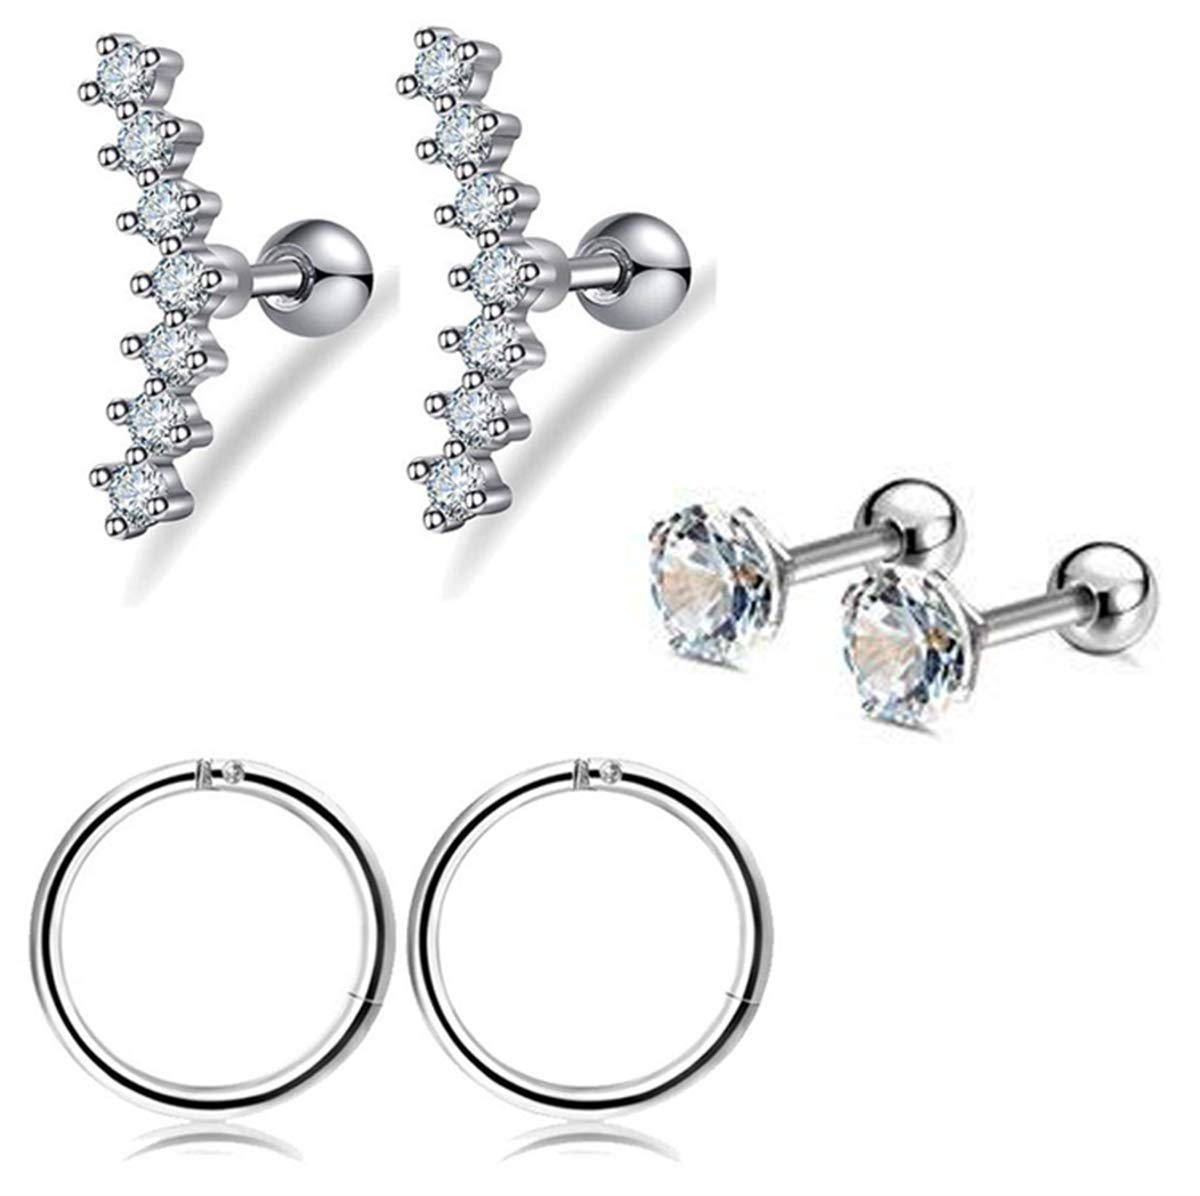 FIBO STEEL 16G Cartilage Tragus Earrings Set for Women Girls Helix Conch Daith Piercing Jewelry (B: 3 Pairs a Set) by FIBO STEEL